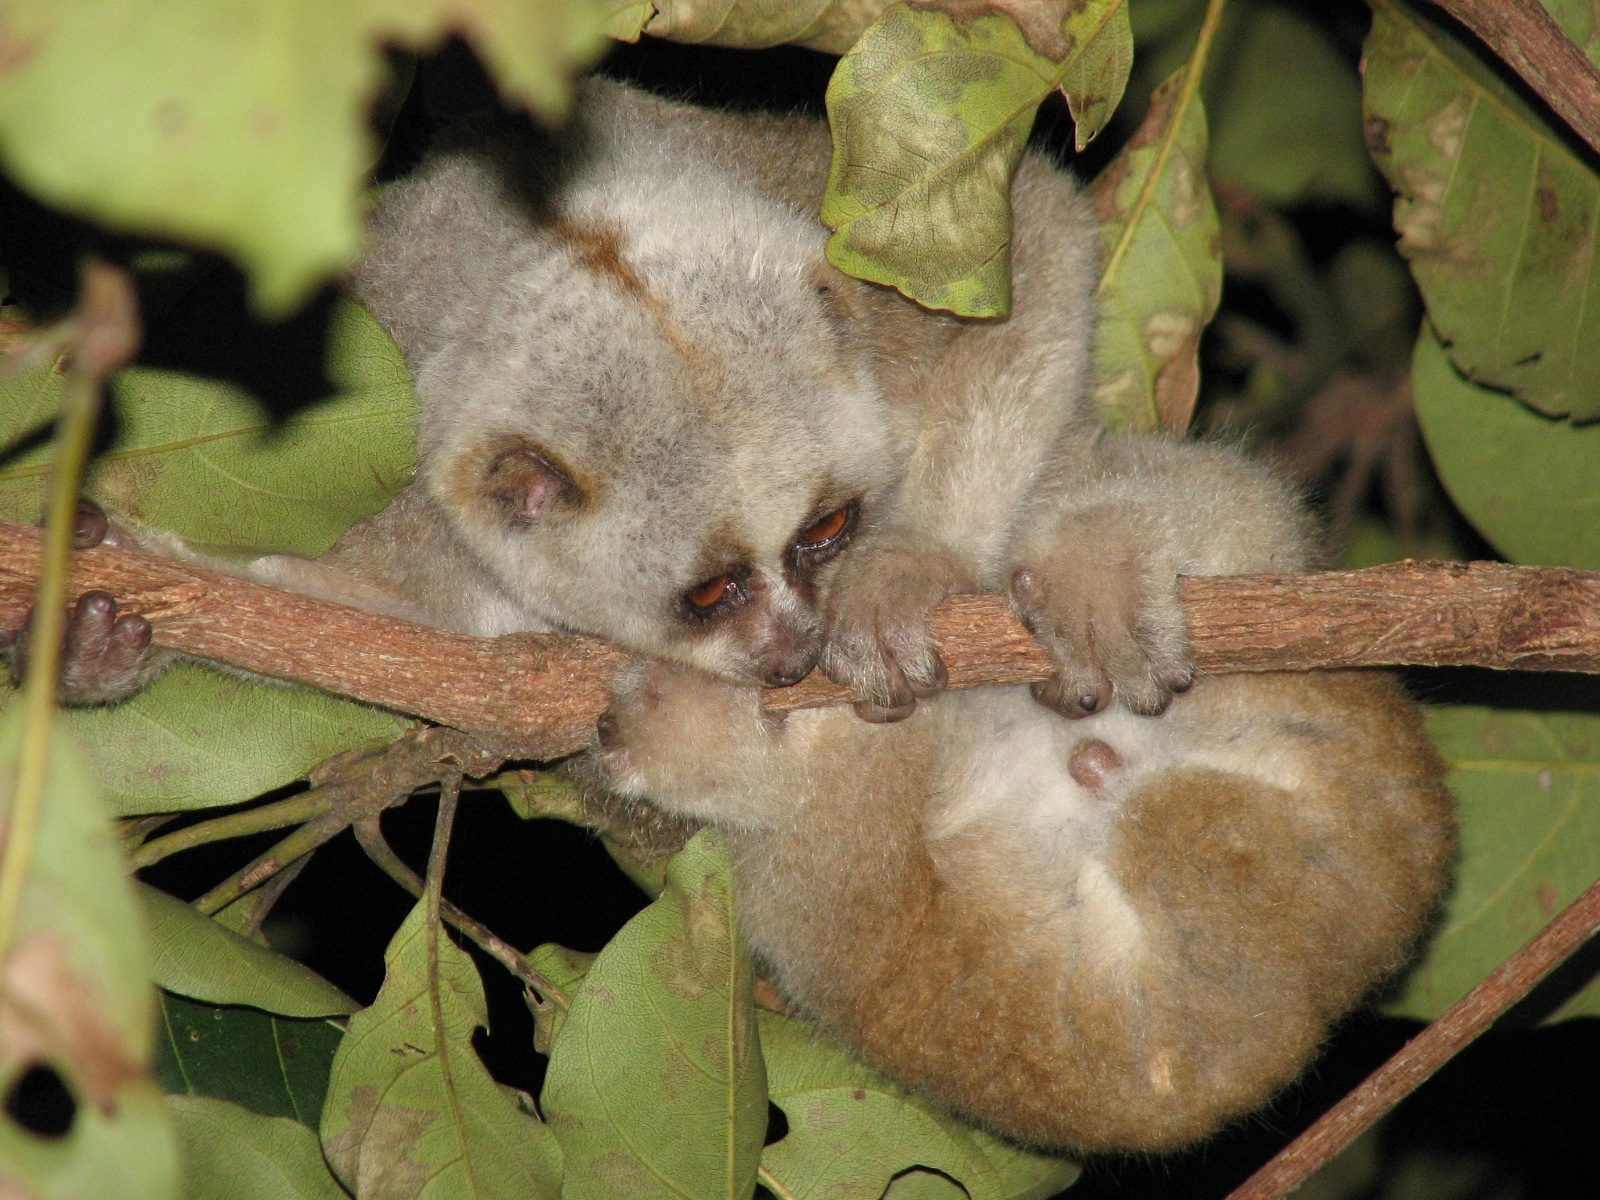 The flexible behaviour of the slow loris allows them to survive in a range of habitats. However, illegal pet trade and their rampant use in traditional medicines has led to local extinctions across their range. Today, their populations are seeing a steep decline and as a result, they are listed as 'Vulnerable'  on the IUCN Red List. Photo: Swapna Nelaballi